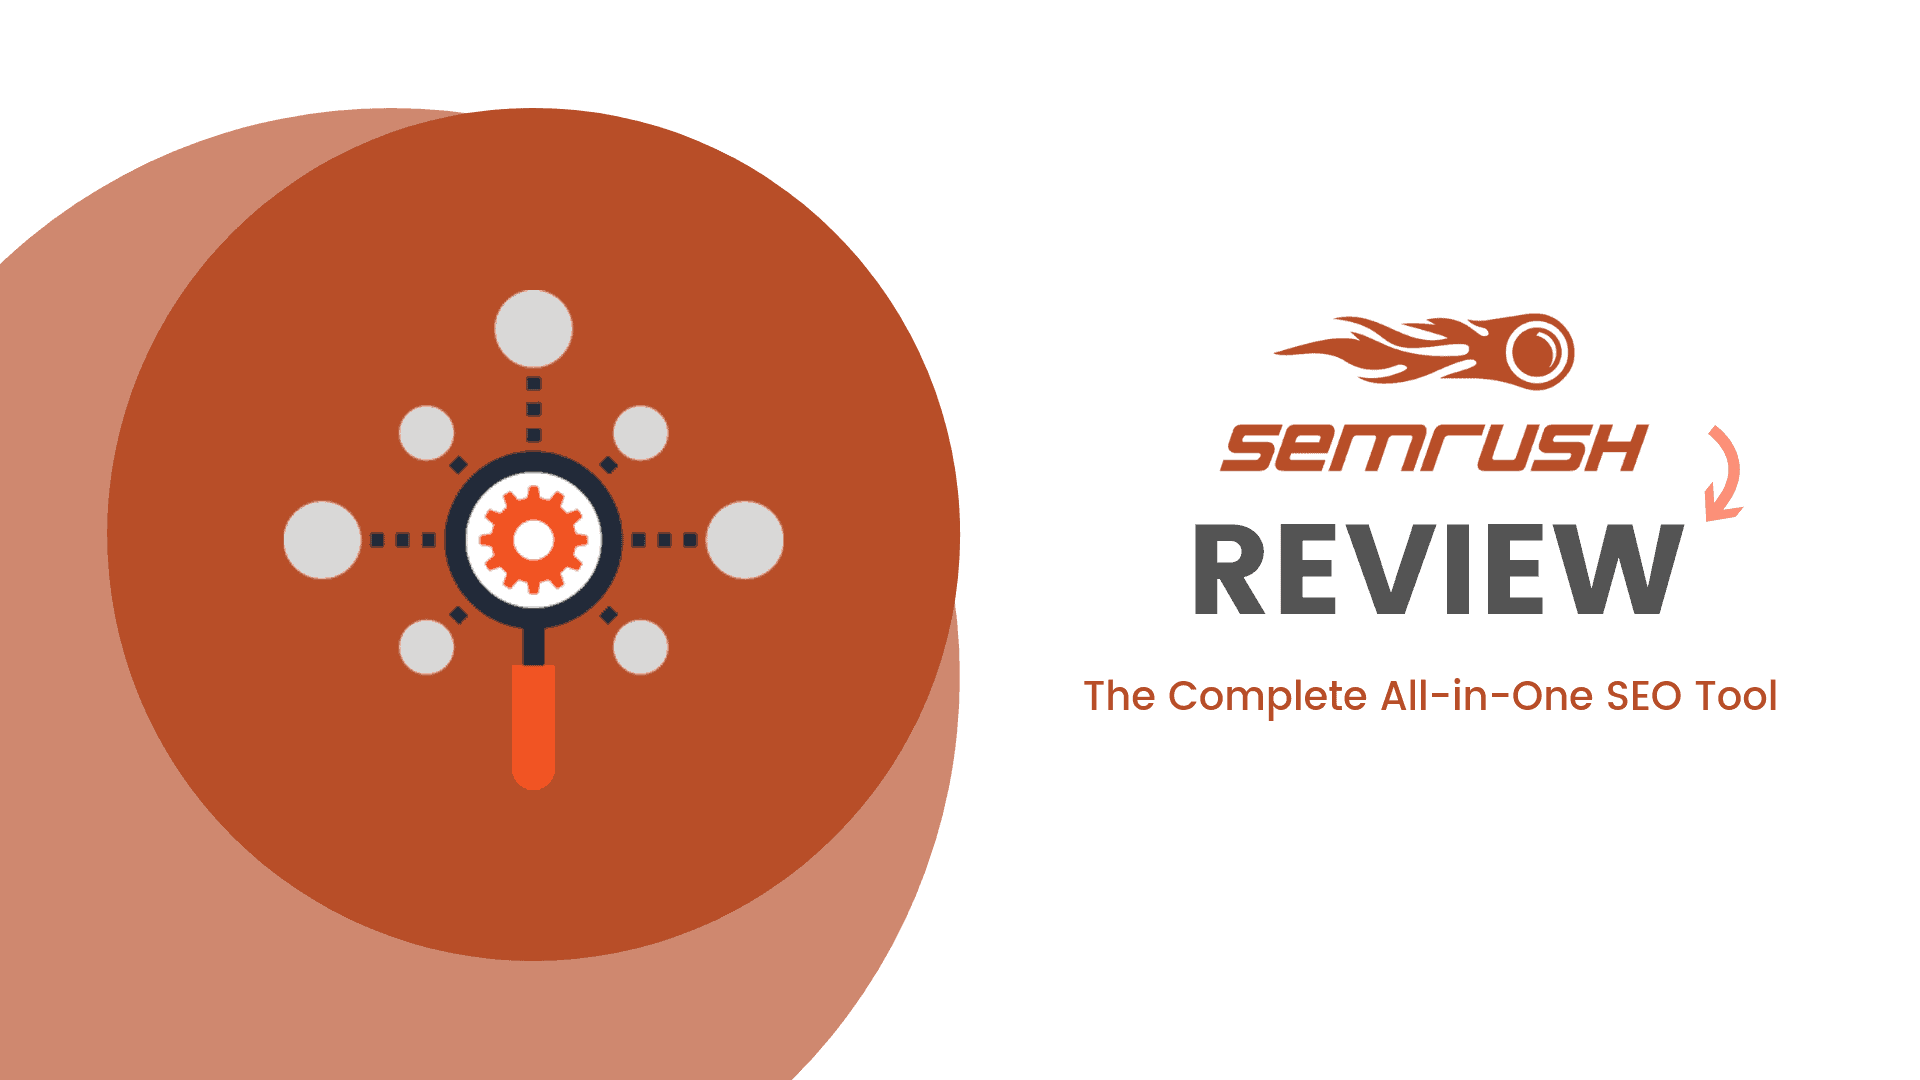 Buy Seo Software Semrush Used Amazon